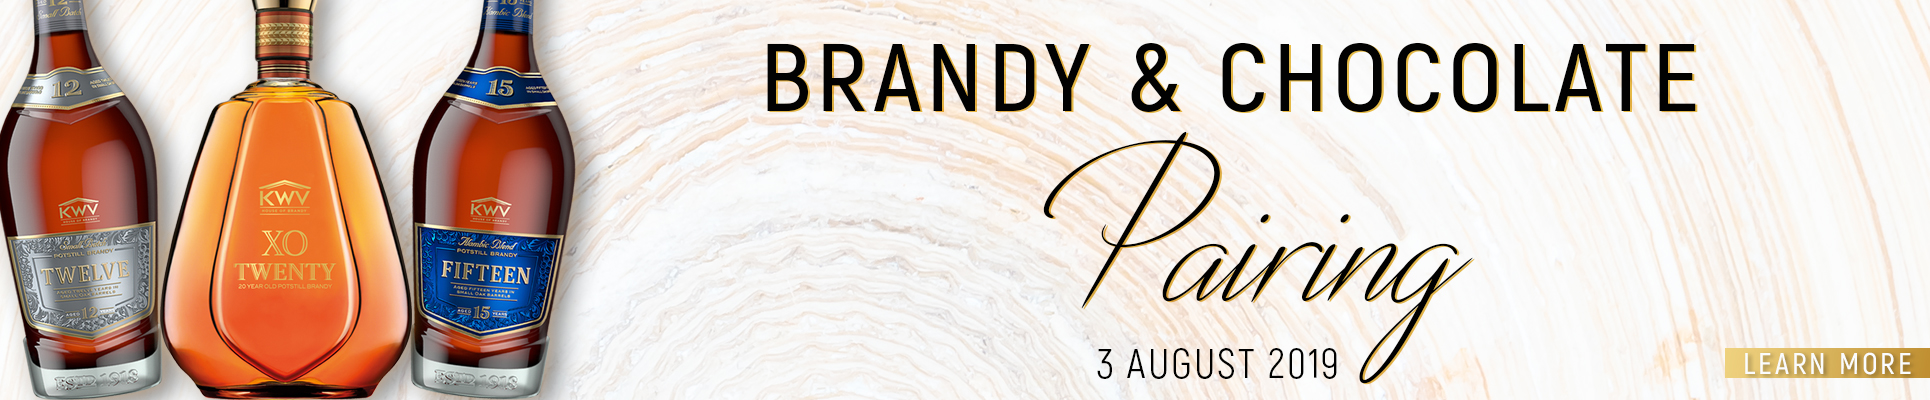 Brandy & Chocolate Pairing at Misty Hills Country Hotel   BRANDY & CHOCOLATE PAIRED WITH A 5 COURSE MEAL  Join us on the 3rd of August for a cosy evening where Frey Chocolat will be complementing the distinctive flavours of the below KWV brandy.